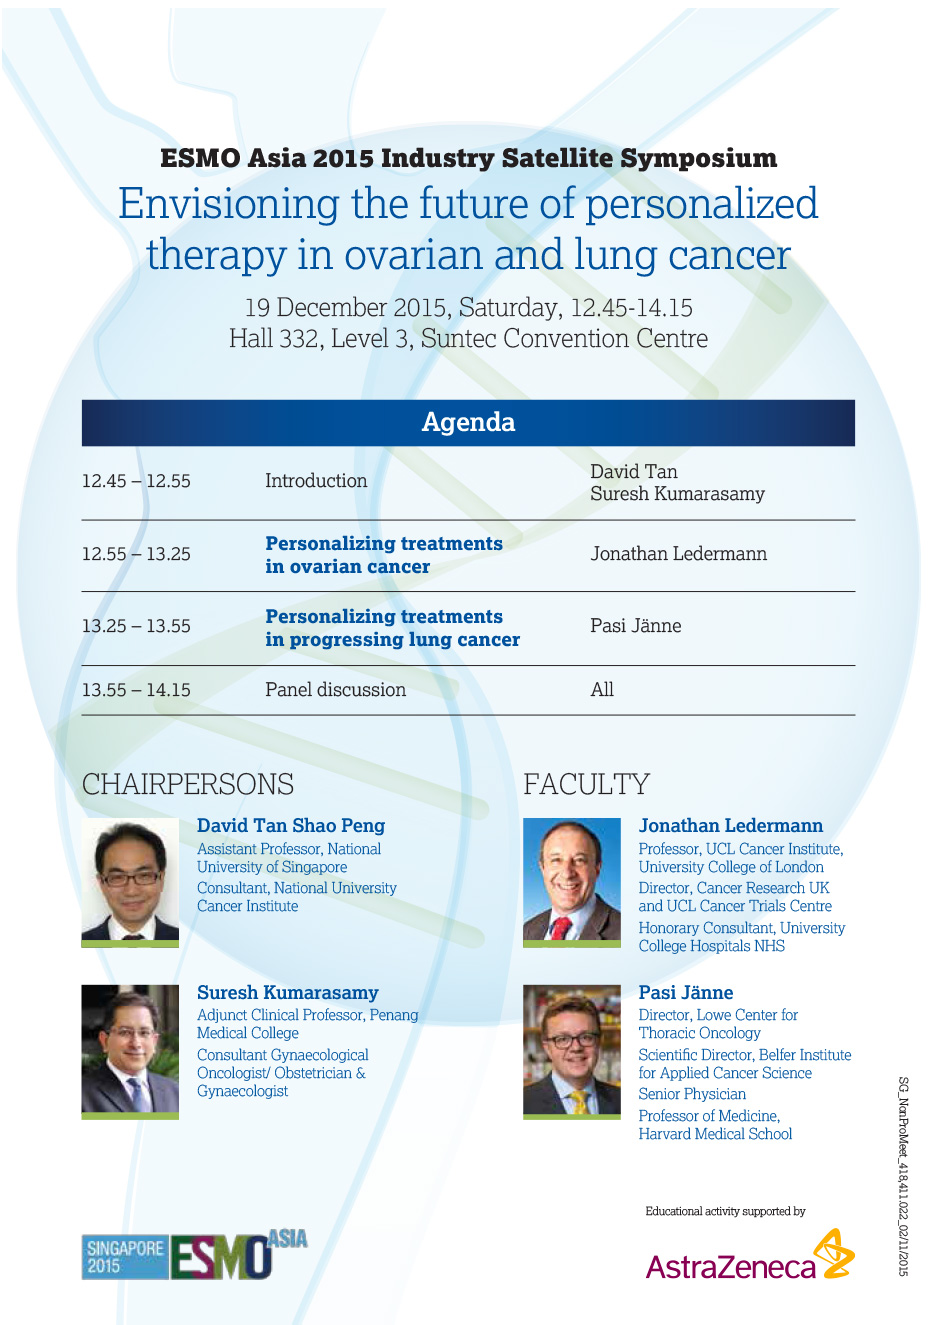 Envisioning the future of personalized therapy in ovarian and lung cancer